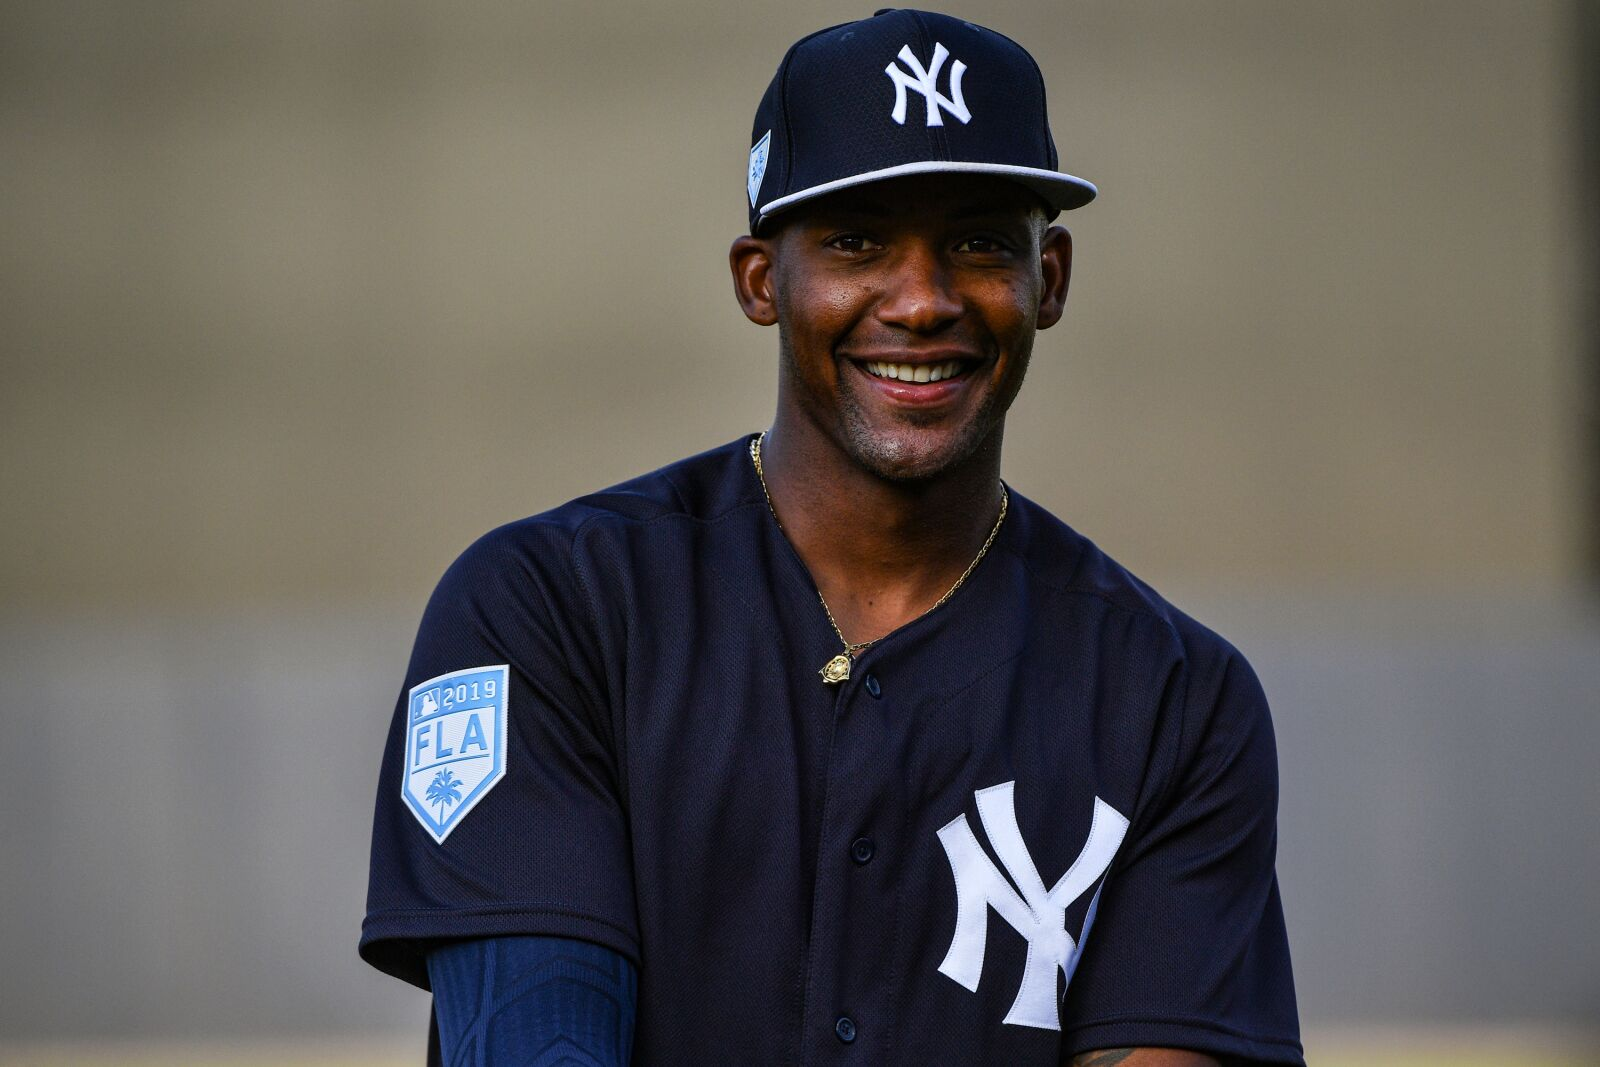 Yankees: Miguel Andujar will gets reps at 1B and LF this spring in addition to 3B